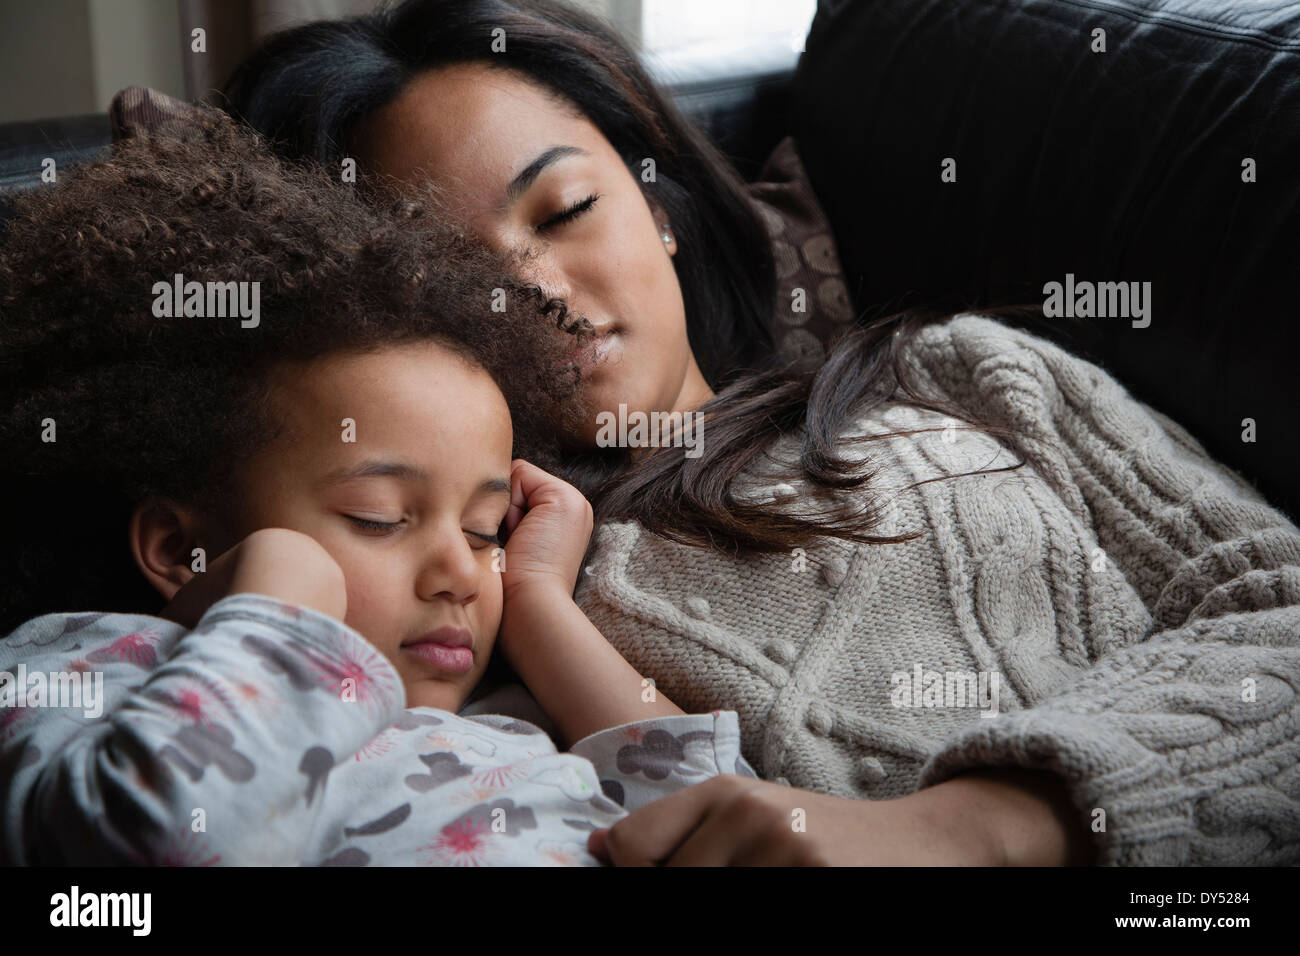 Two sisters asleep on sofa - Stock Image